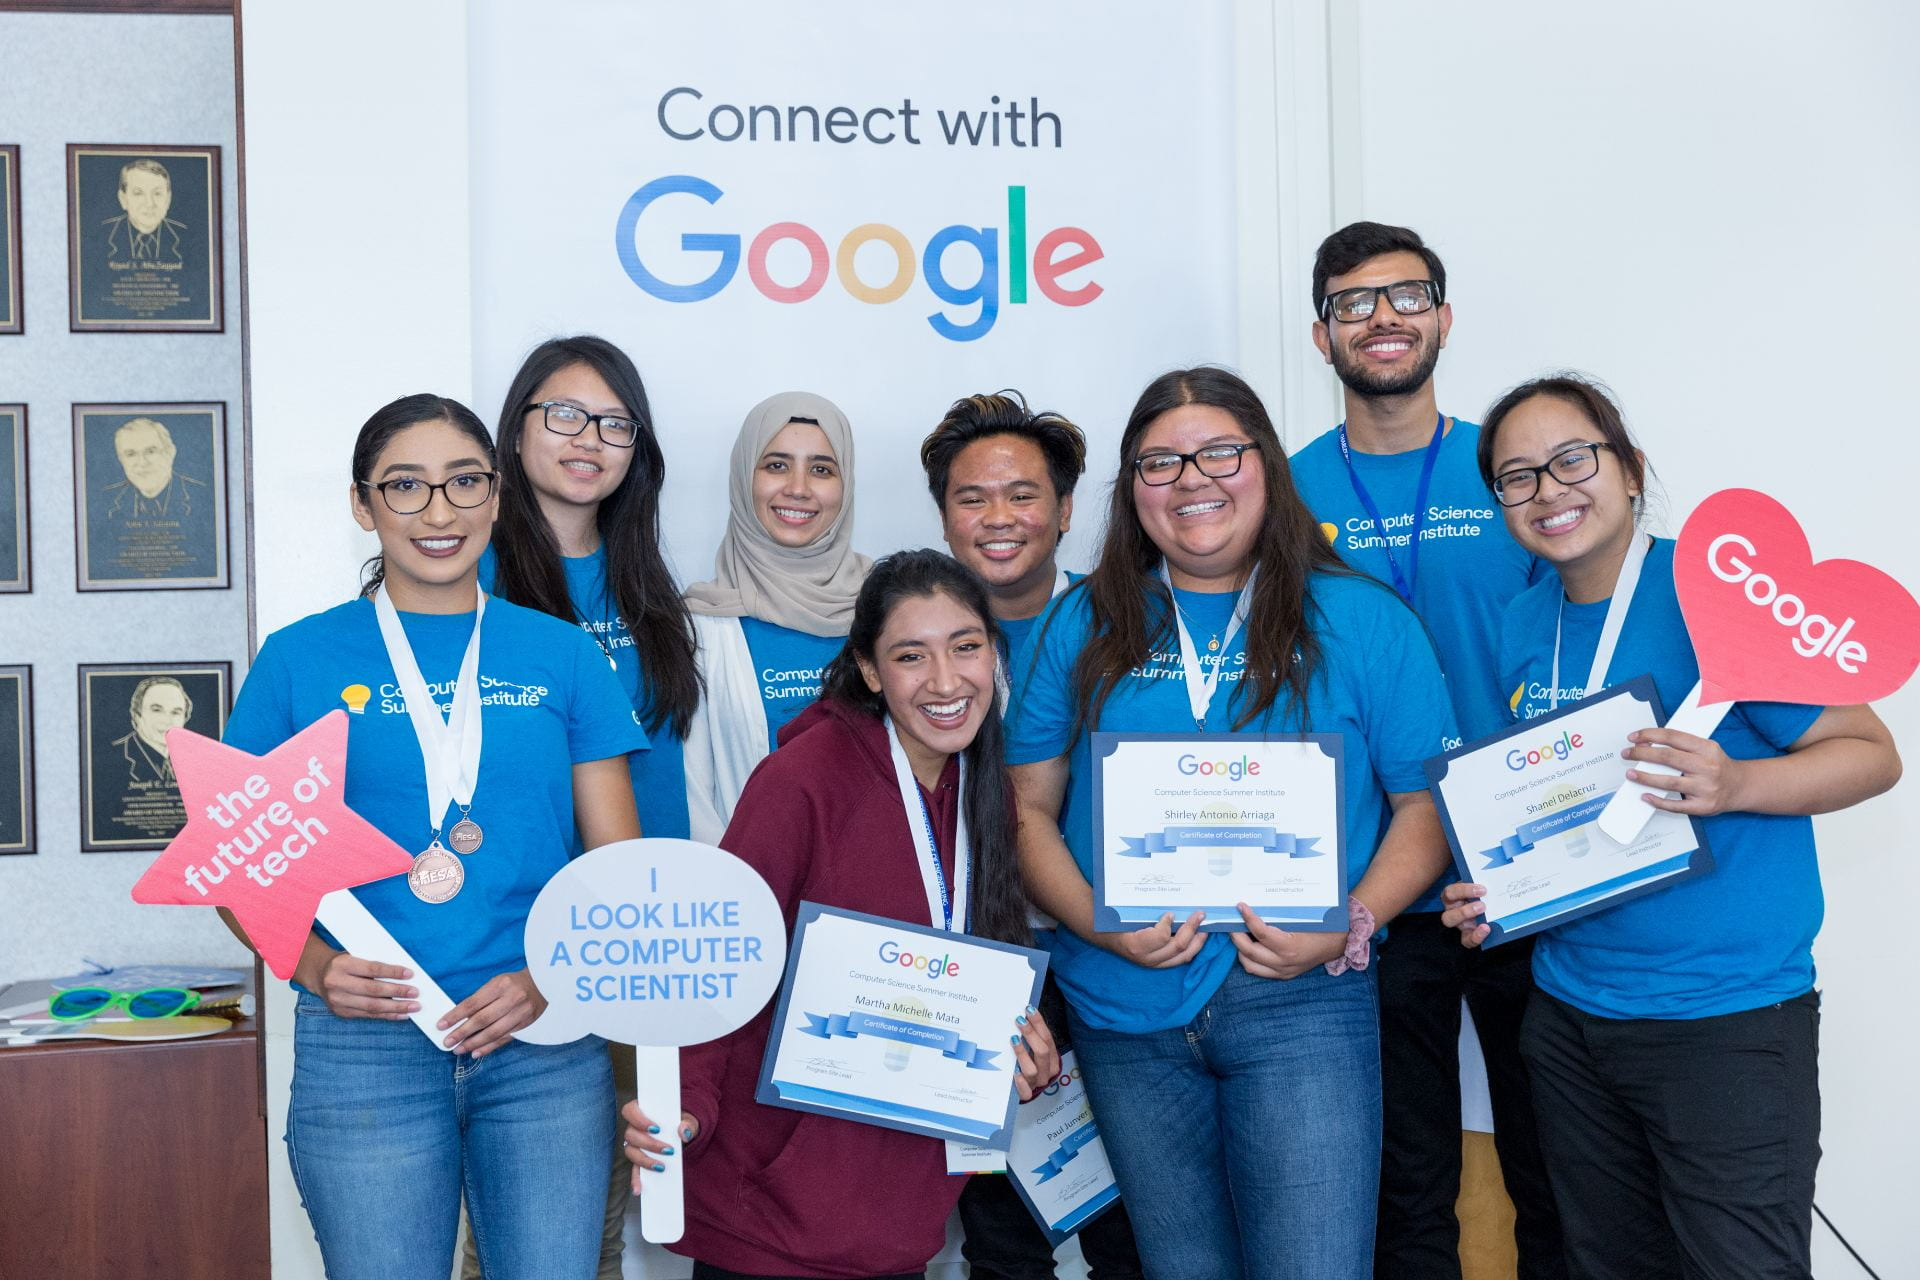 SJSU students and educators celebrate on the last day of Google's Computer Science Summer Institute Extension Program. Photo by David Schmitz